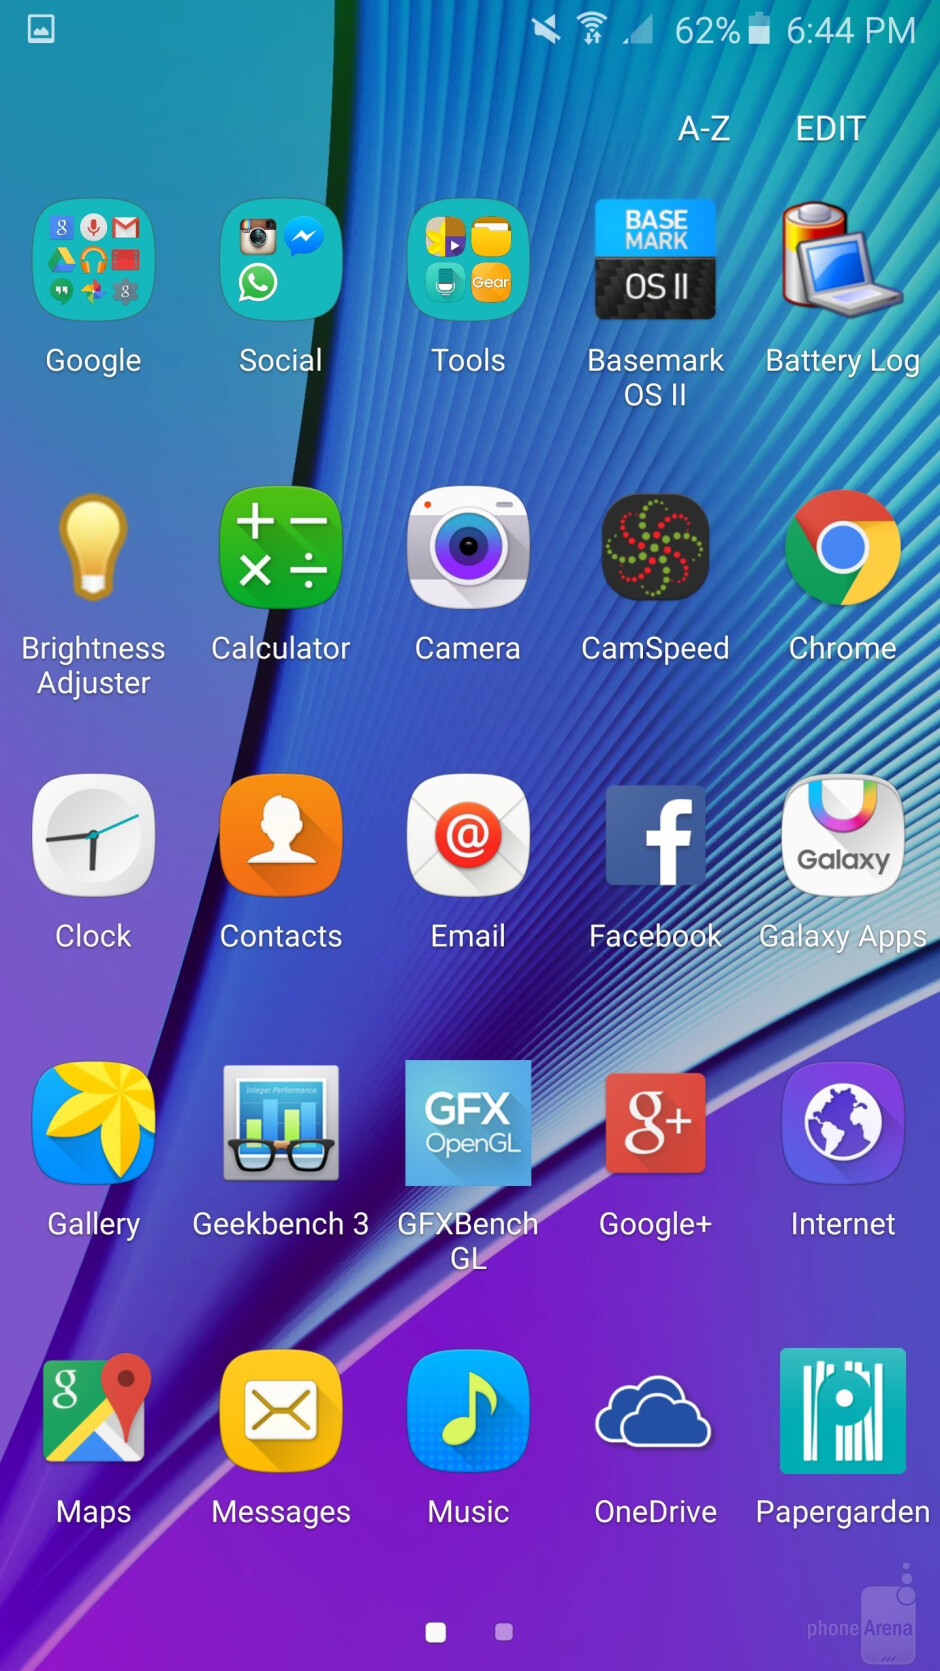 The user interface of the Samsung Galaxy Note5 - Samsung Galaxy Note5 vs Samsung Galaxy S6